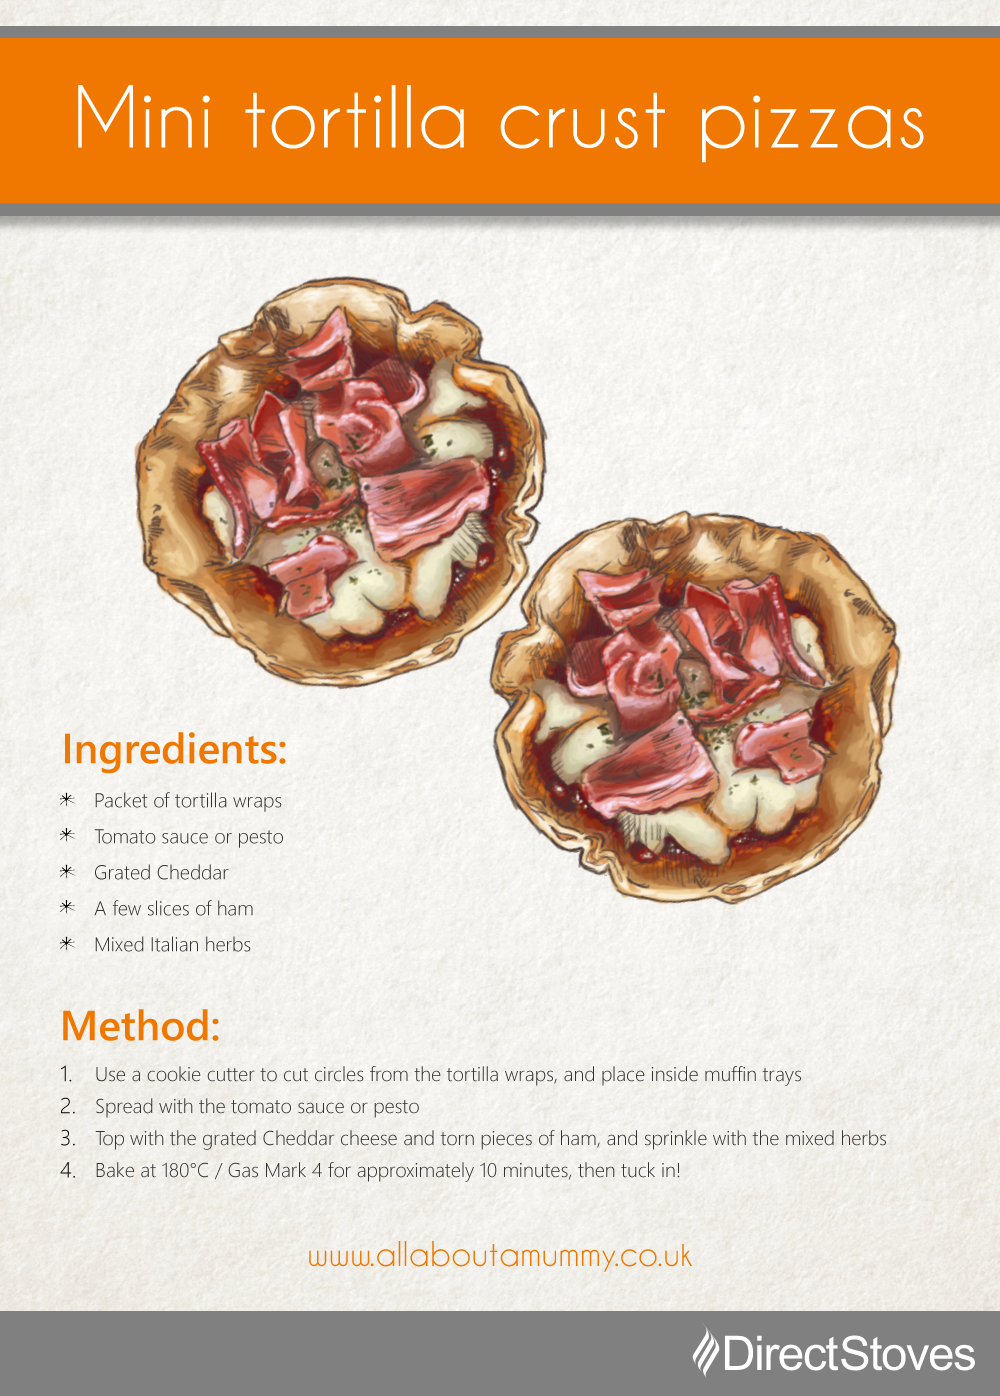 Pizza recipe card: Mini tortilla crust pizzas